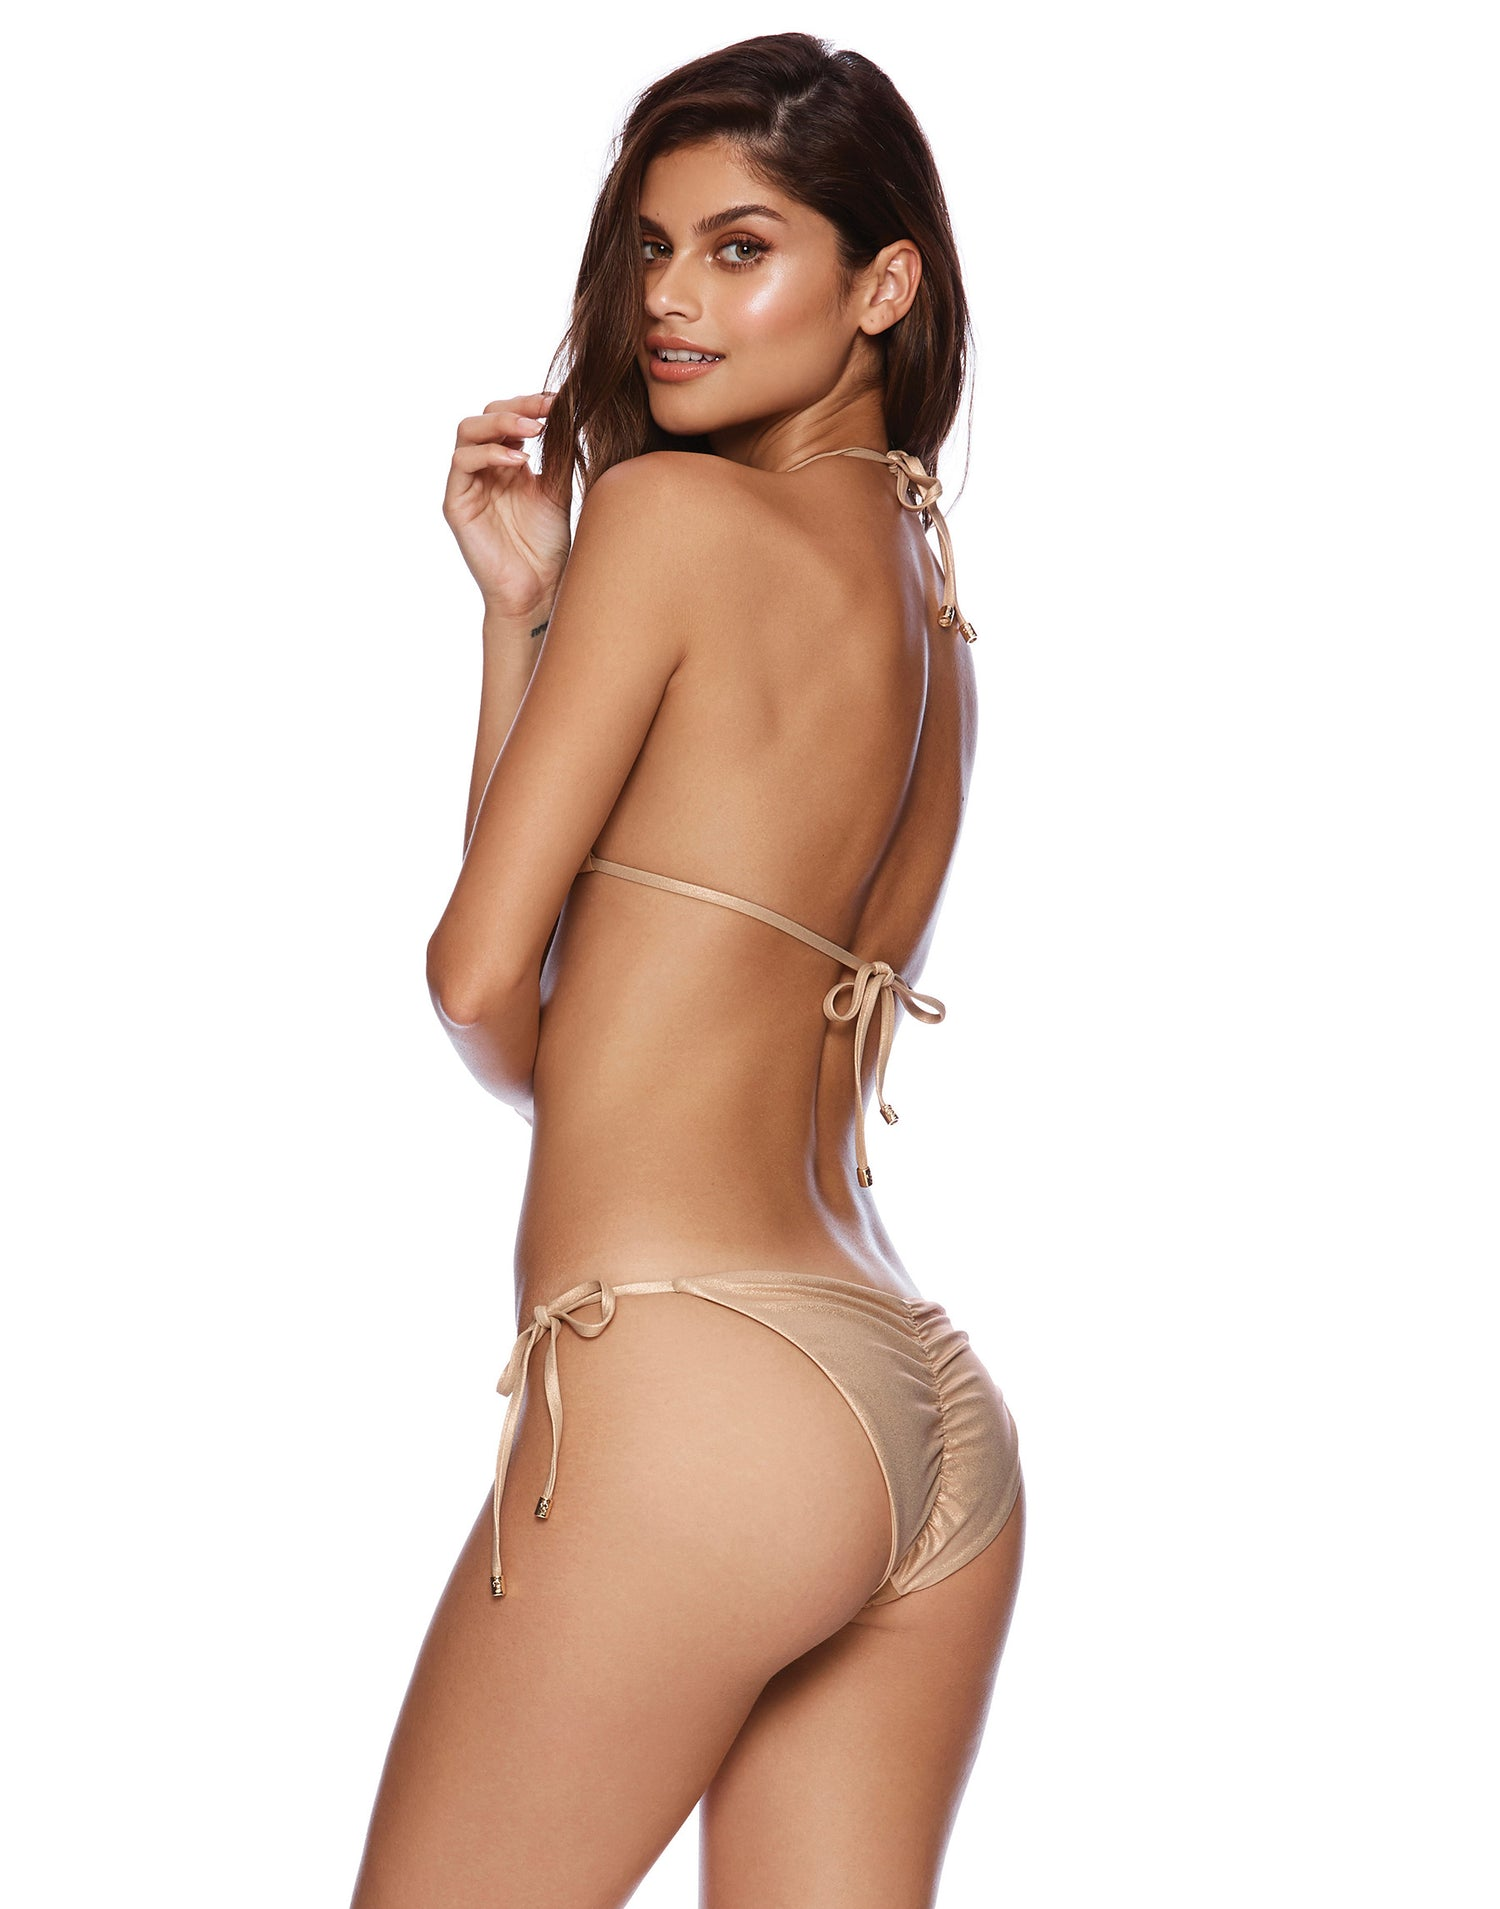 Nala Tie Side Skimpy Bikini Bottom in Rose Gold with Beads and Sequins - side view